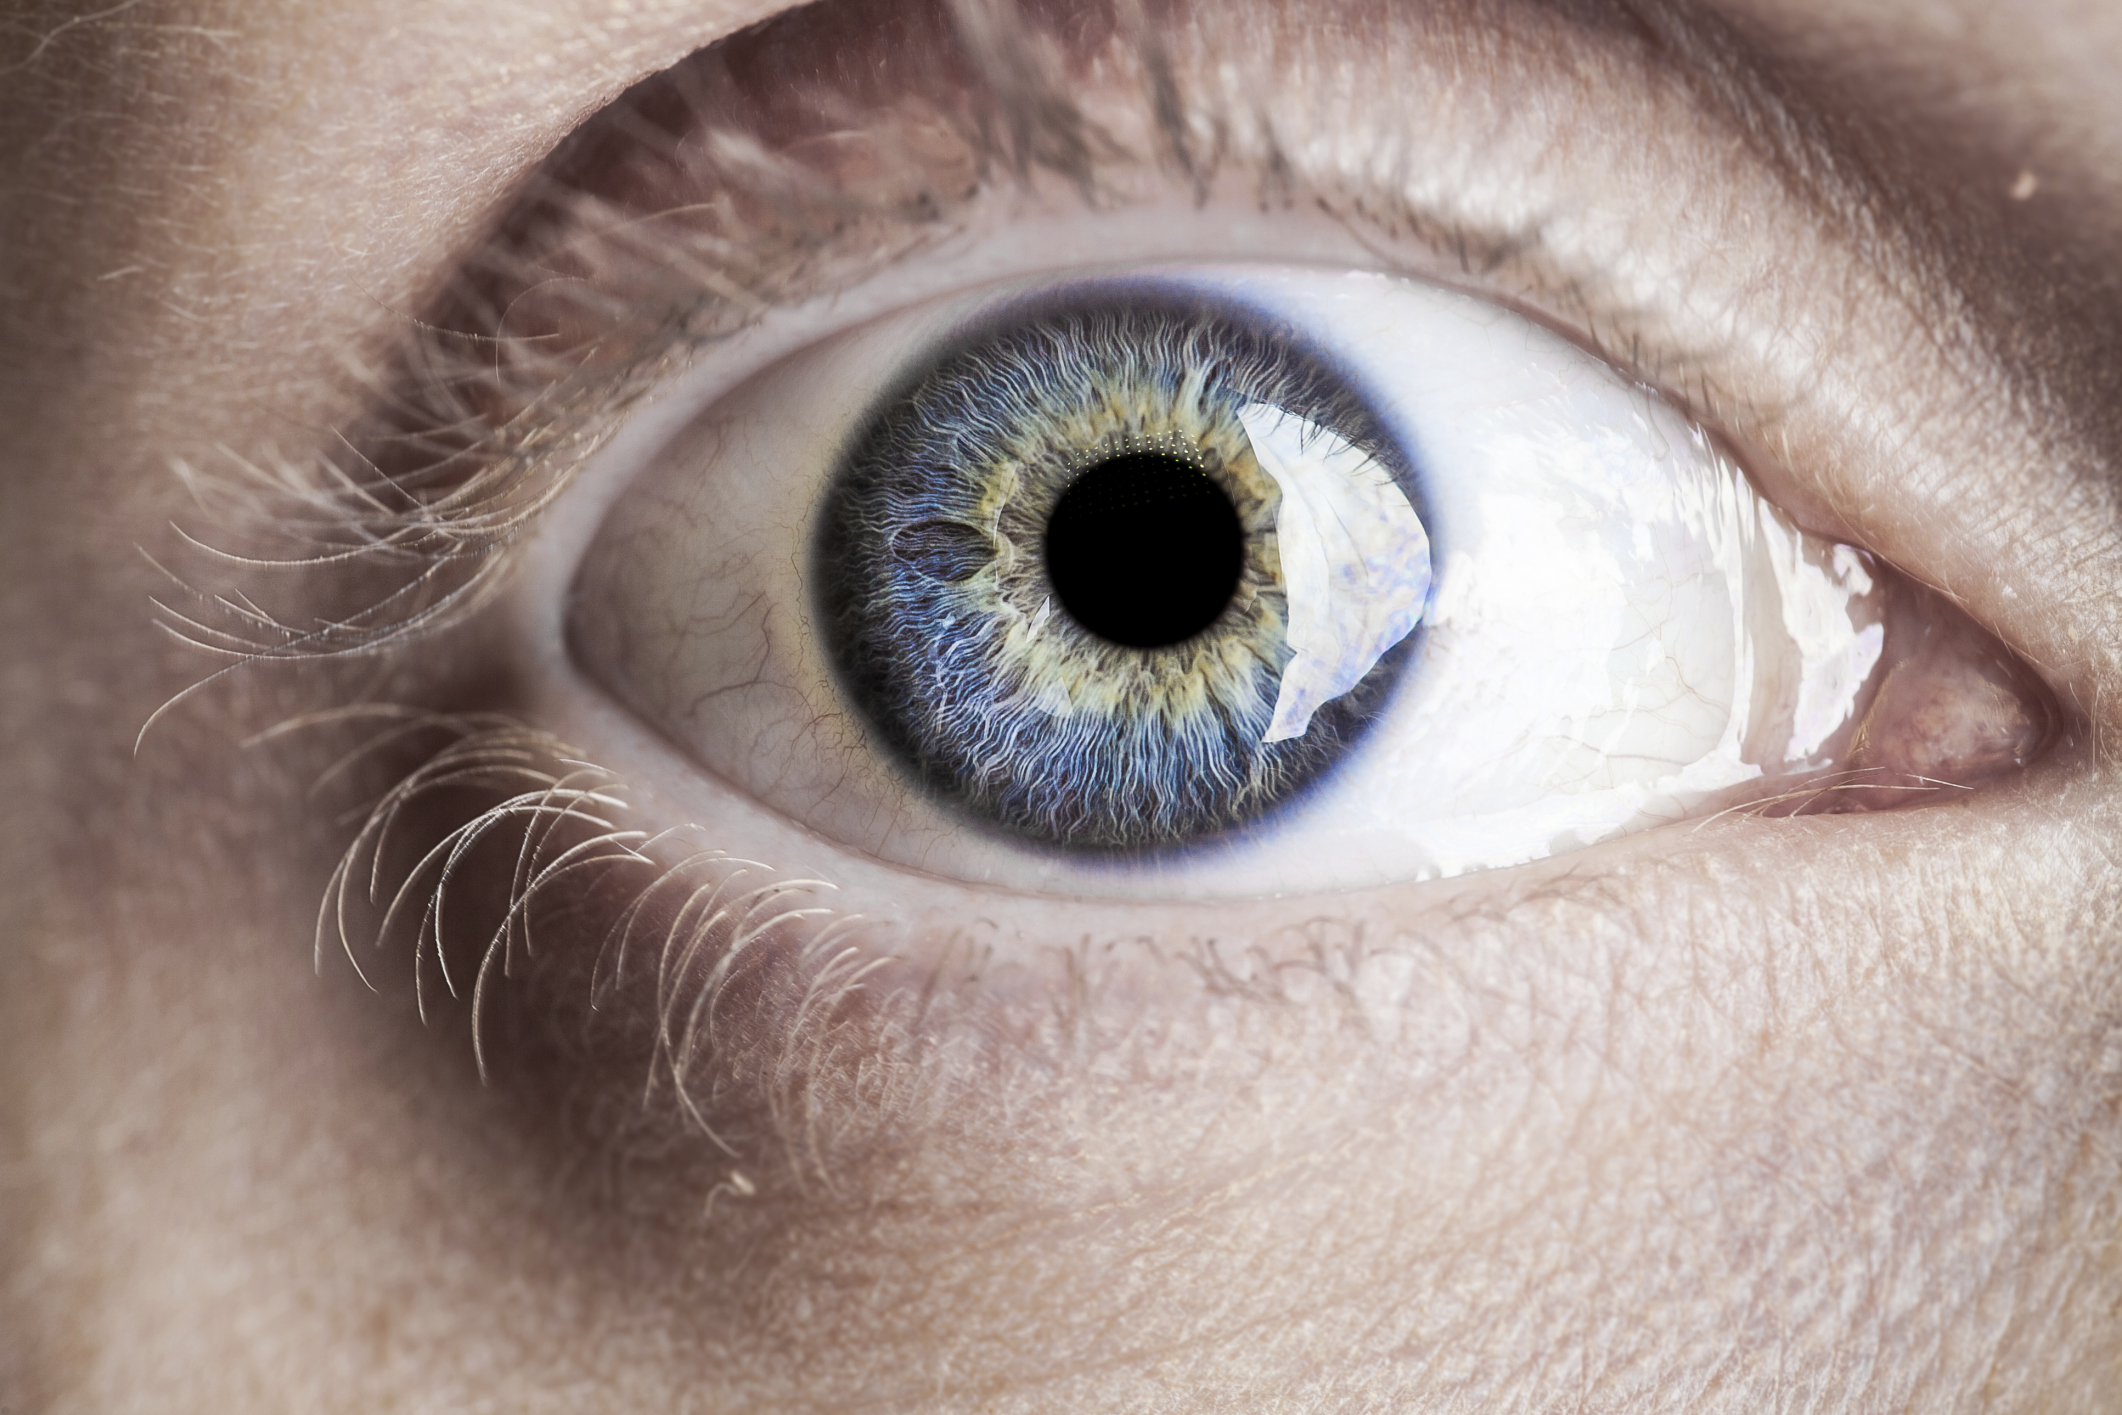 In Every Case Of Eye Paralysis The Loses All Sensory And Motor Functions Its A Much More Common Condition Than Youd Think